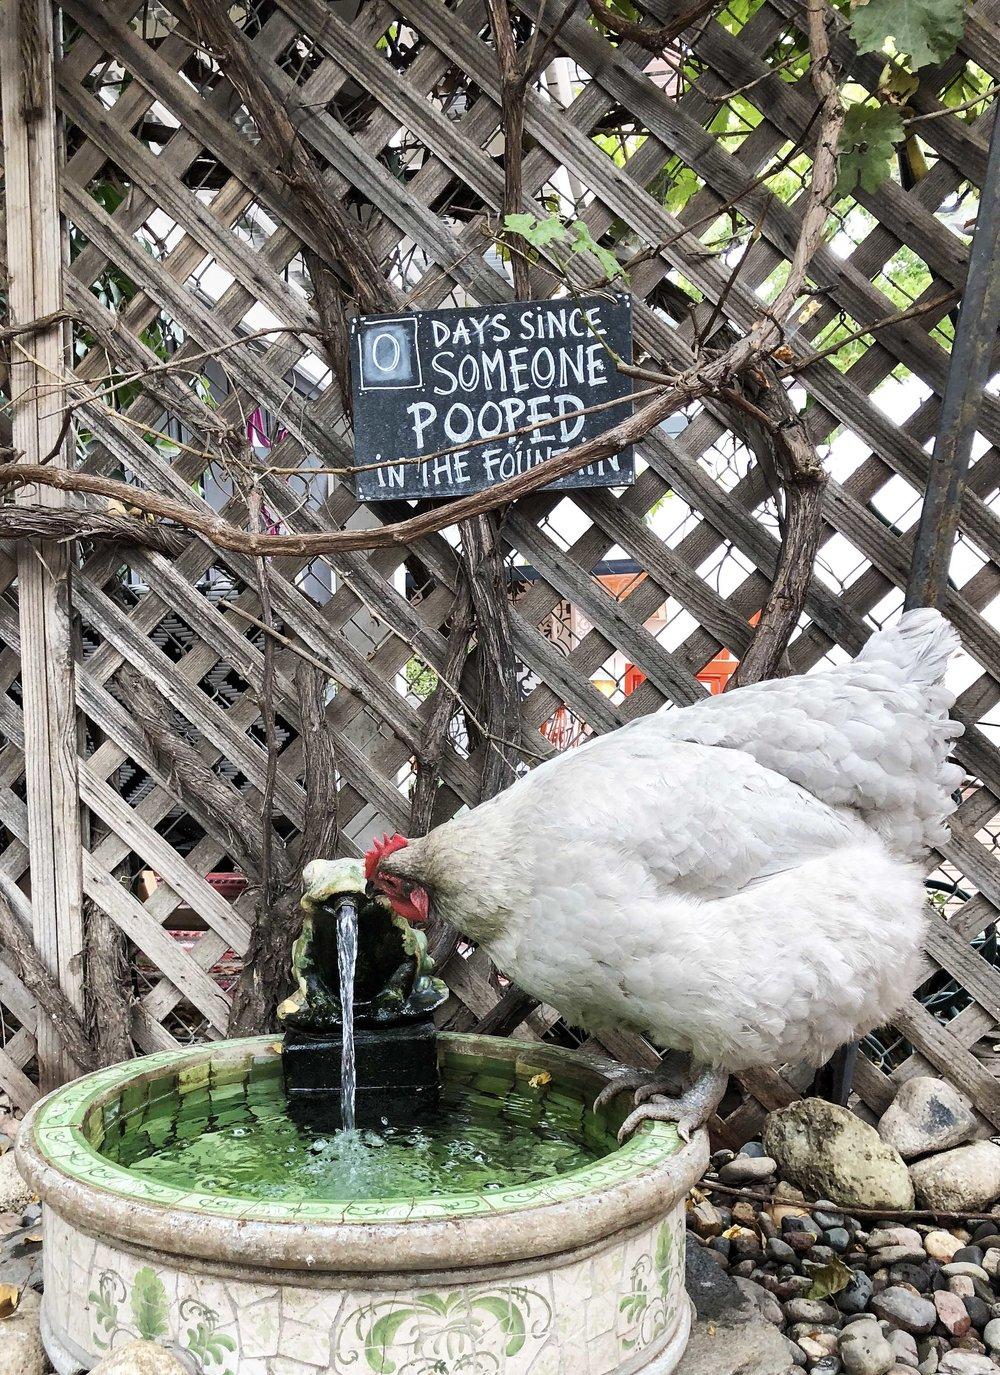 Chickens love froggy fountains.